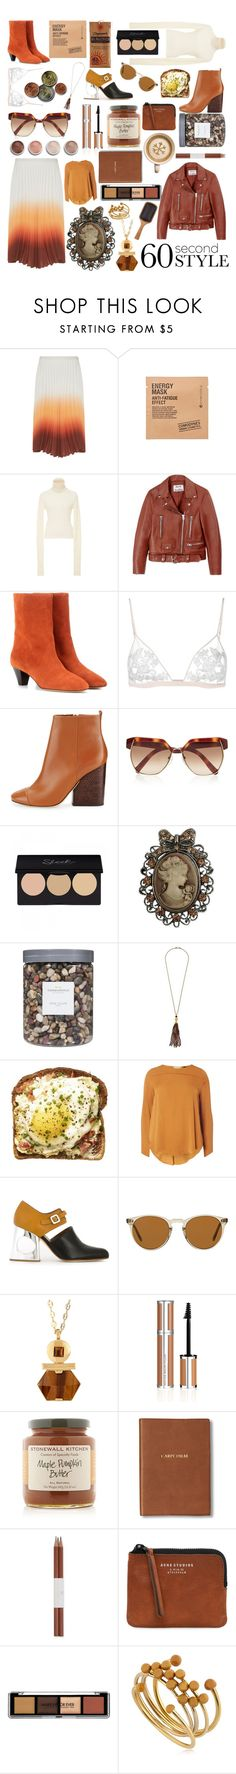 """""""Untitled #62"""" by bianca0813 ❤ liked on Polyvore featuring J.W. Anderson, Comodynes, Marisa Witkin, Acne Studios, Isabel Marant, La Perla, Tory Burch, Chloé, Cameo and Threshold"""